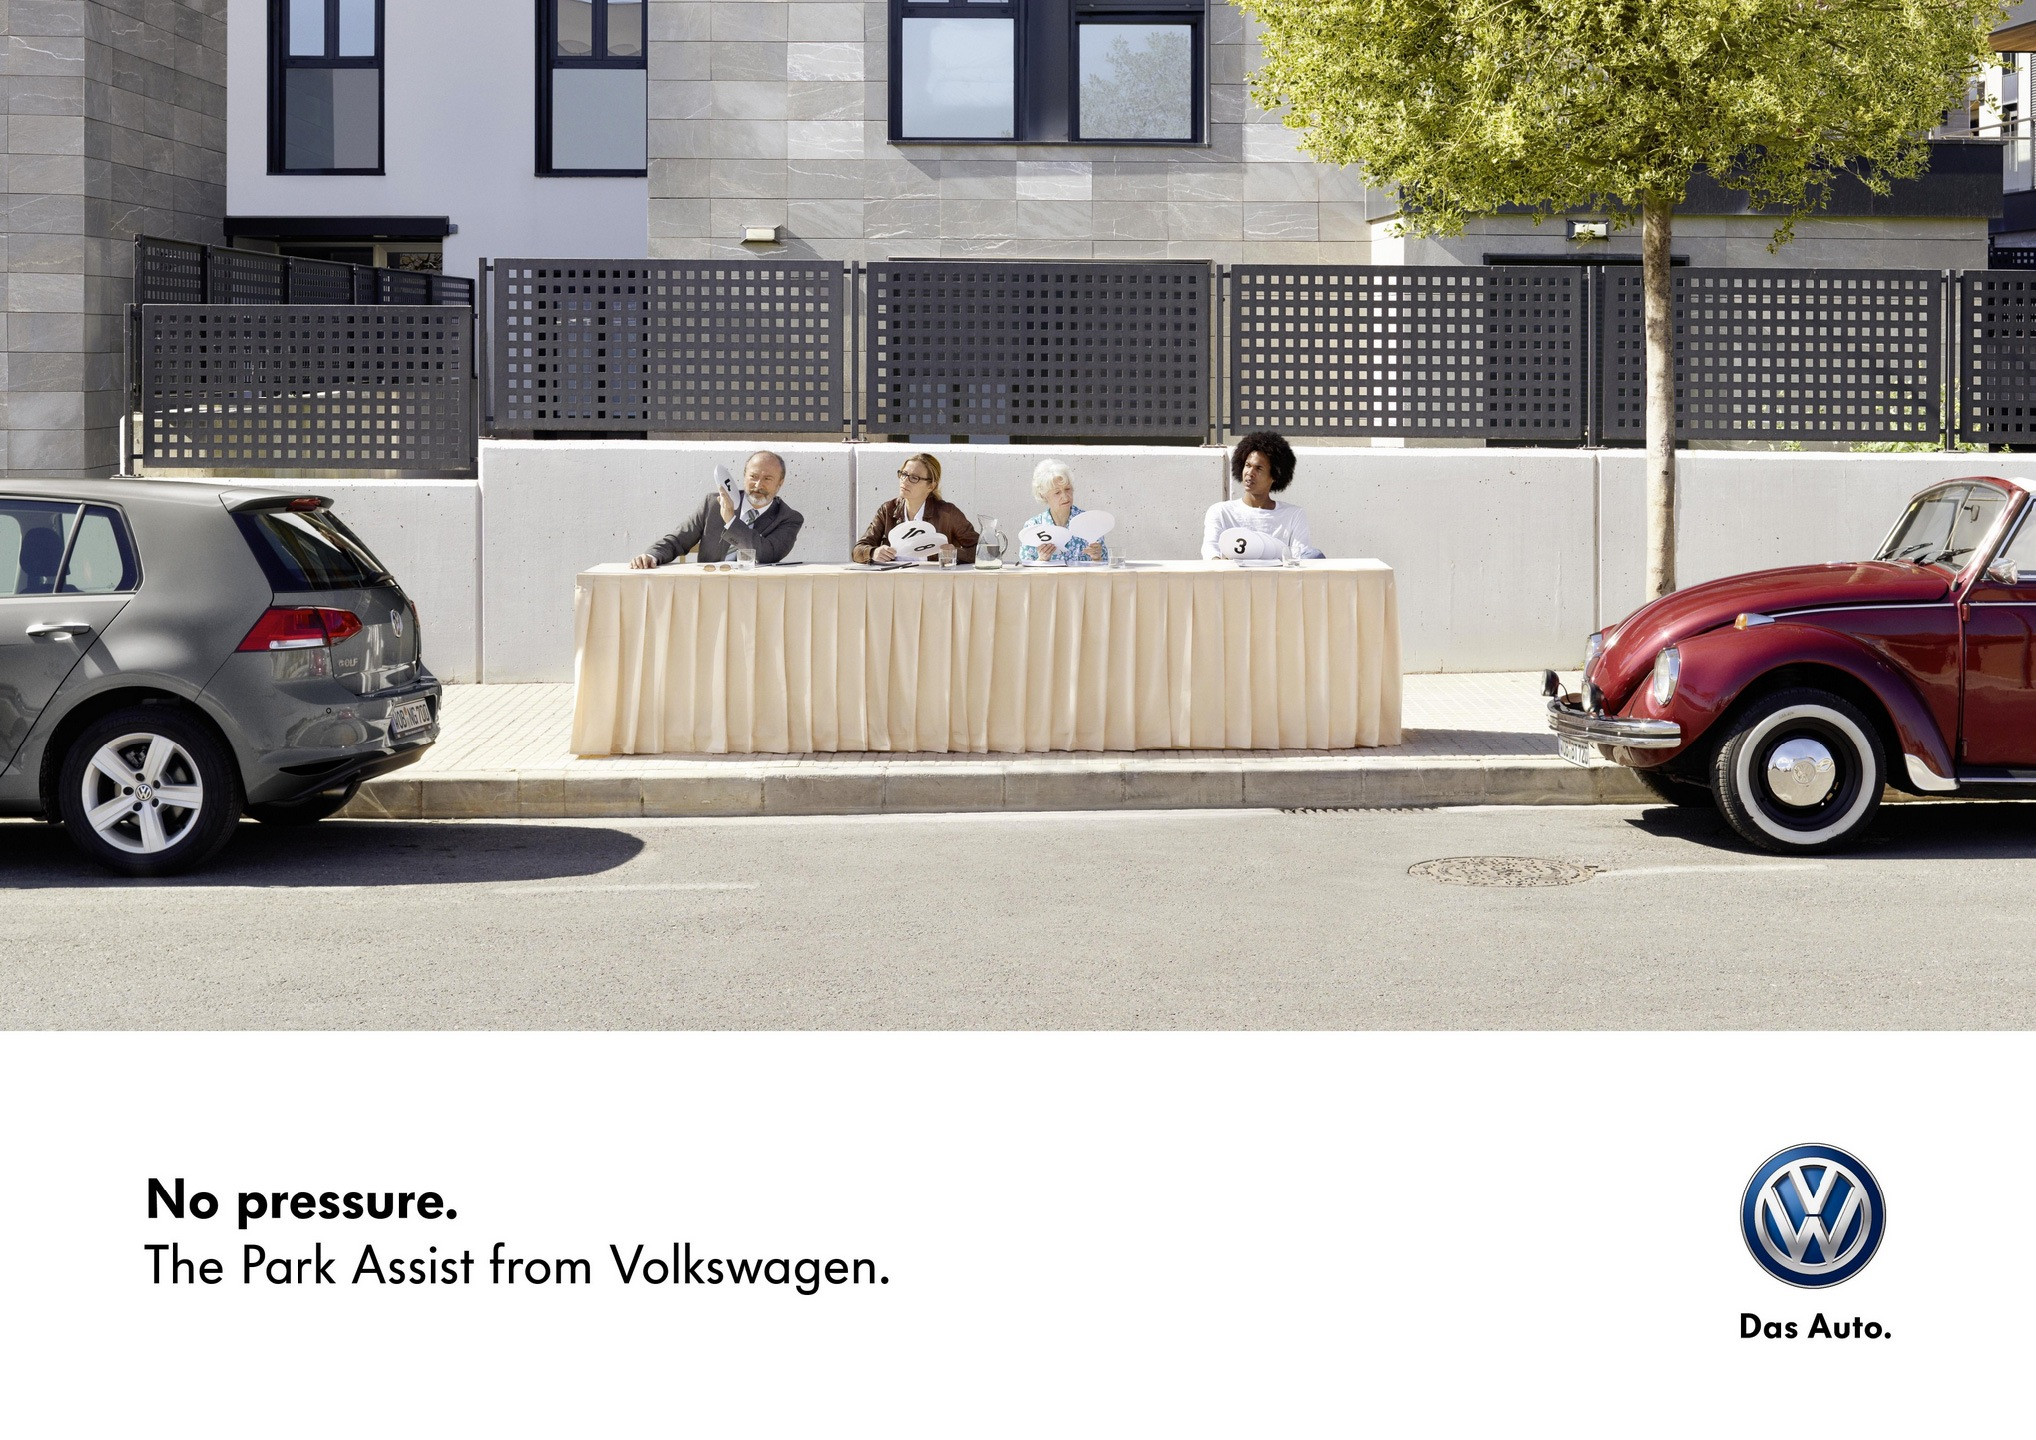 vw-parking-01-big.jpg